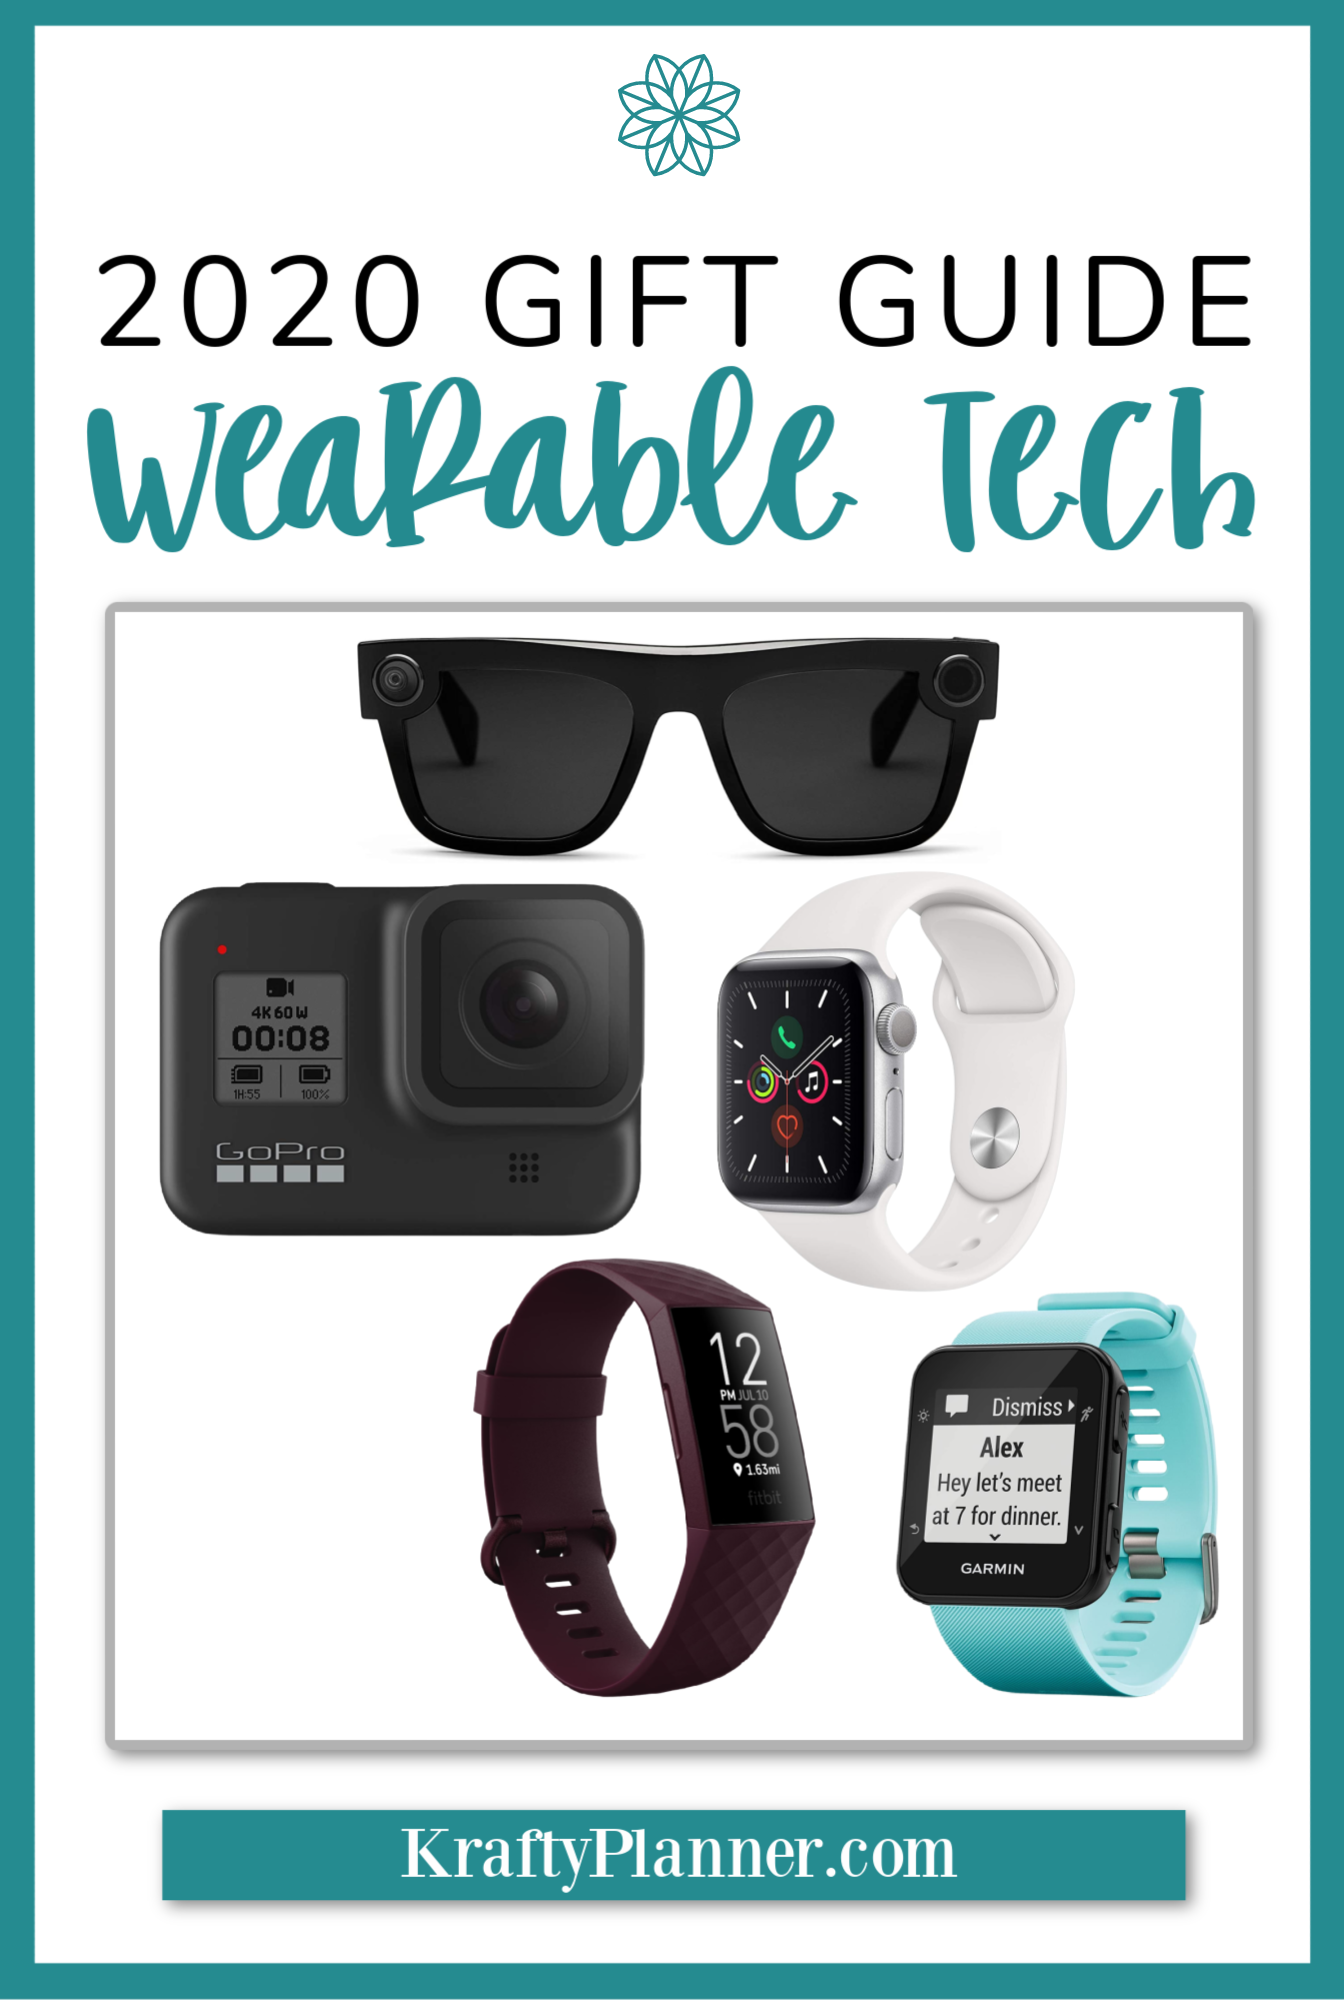 Krafty Planner 2020 Gift Guide: Wearable Technology